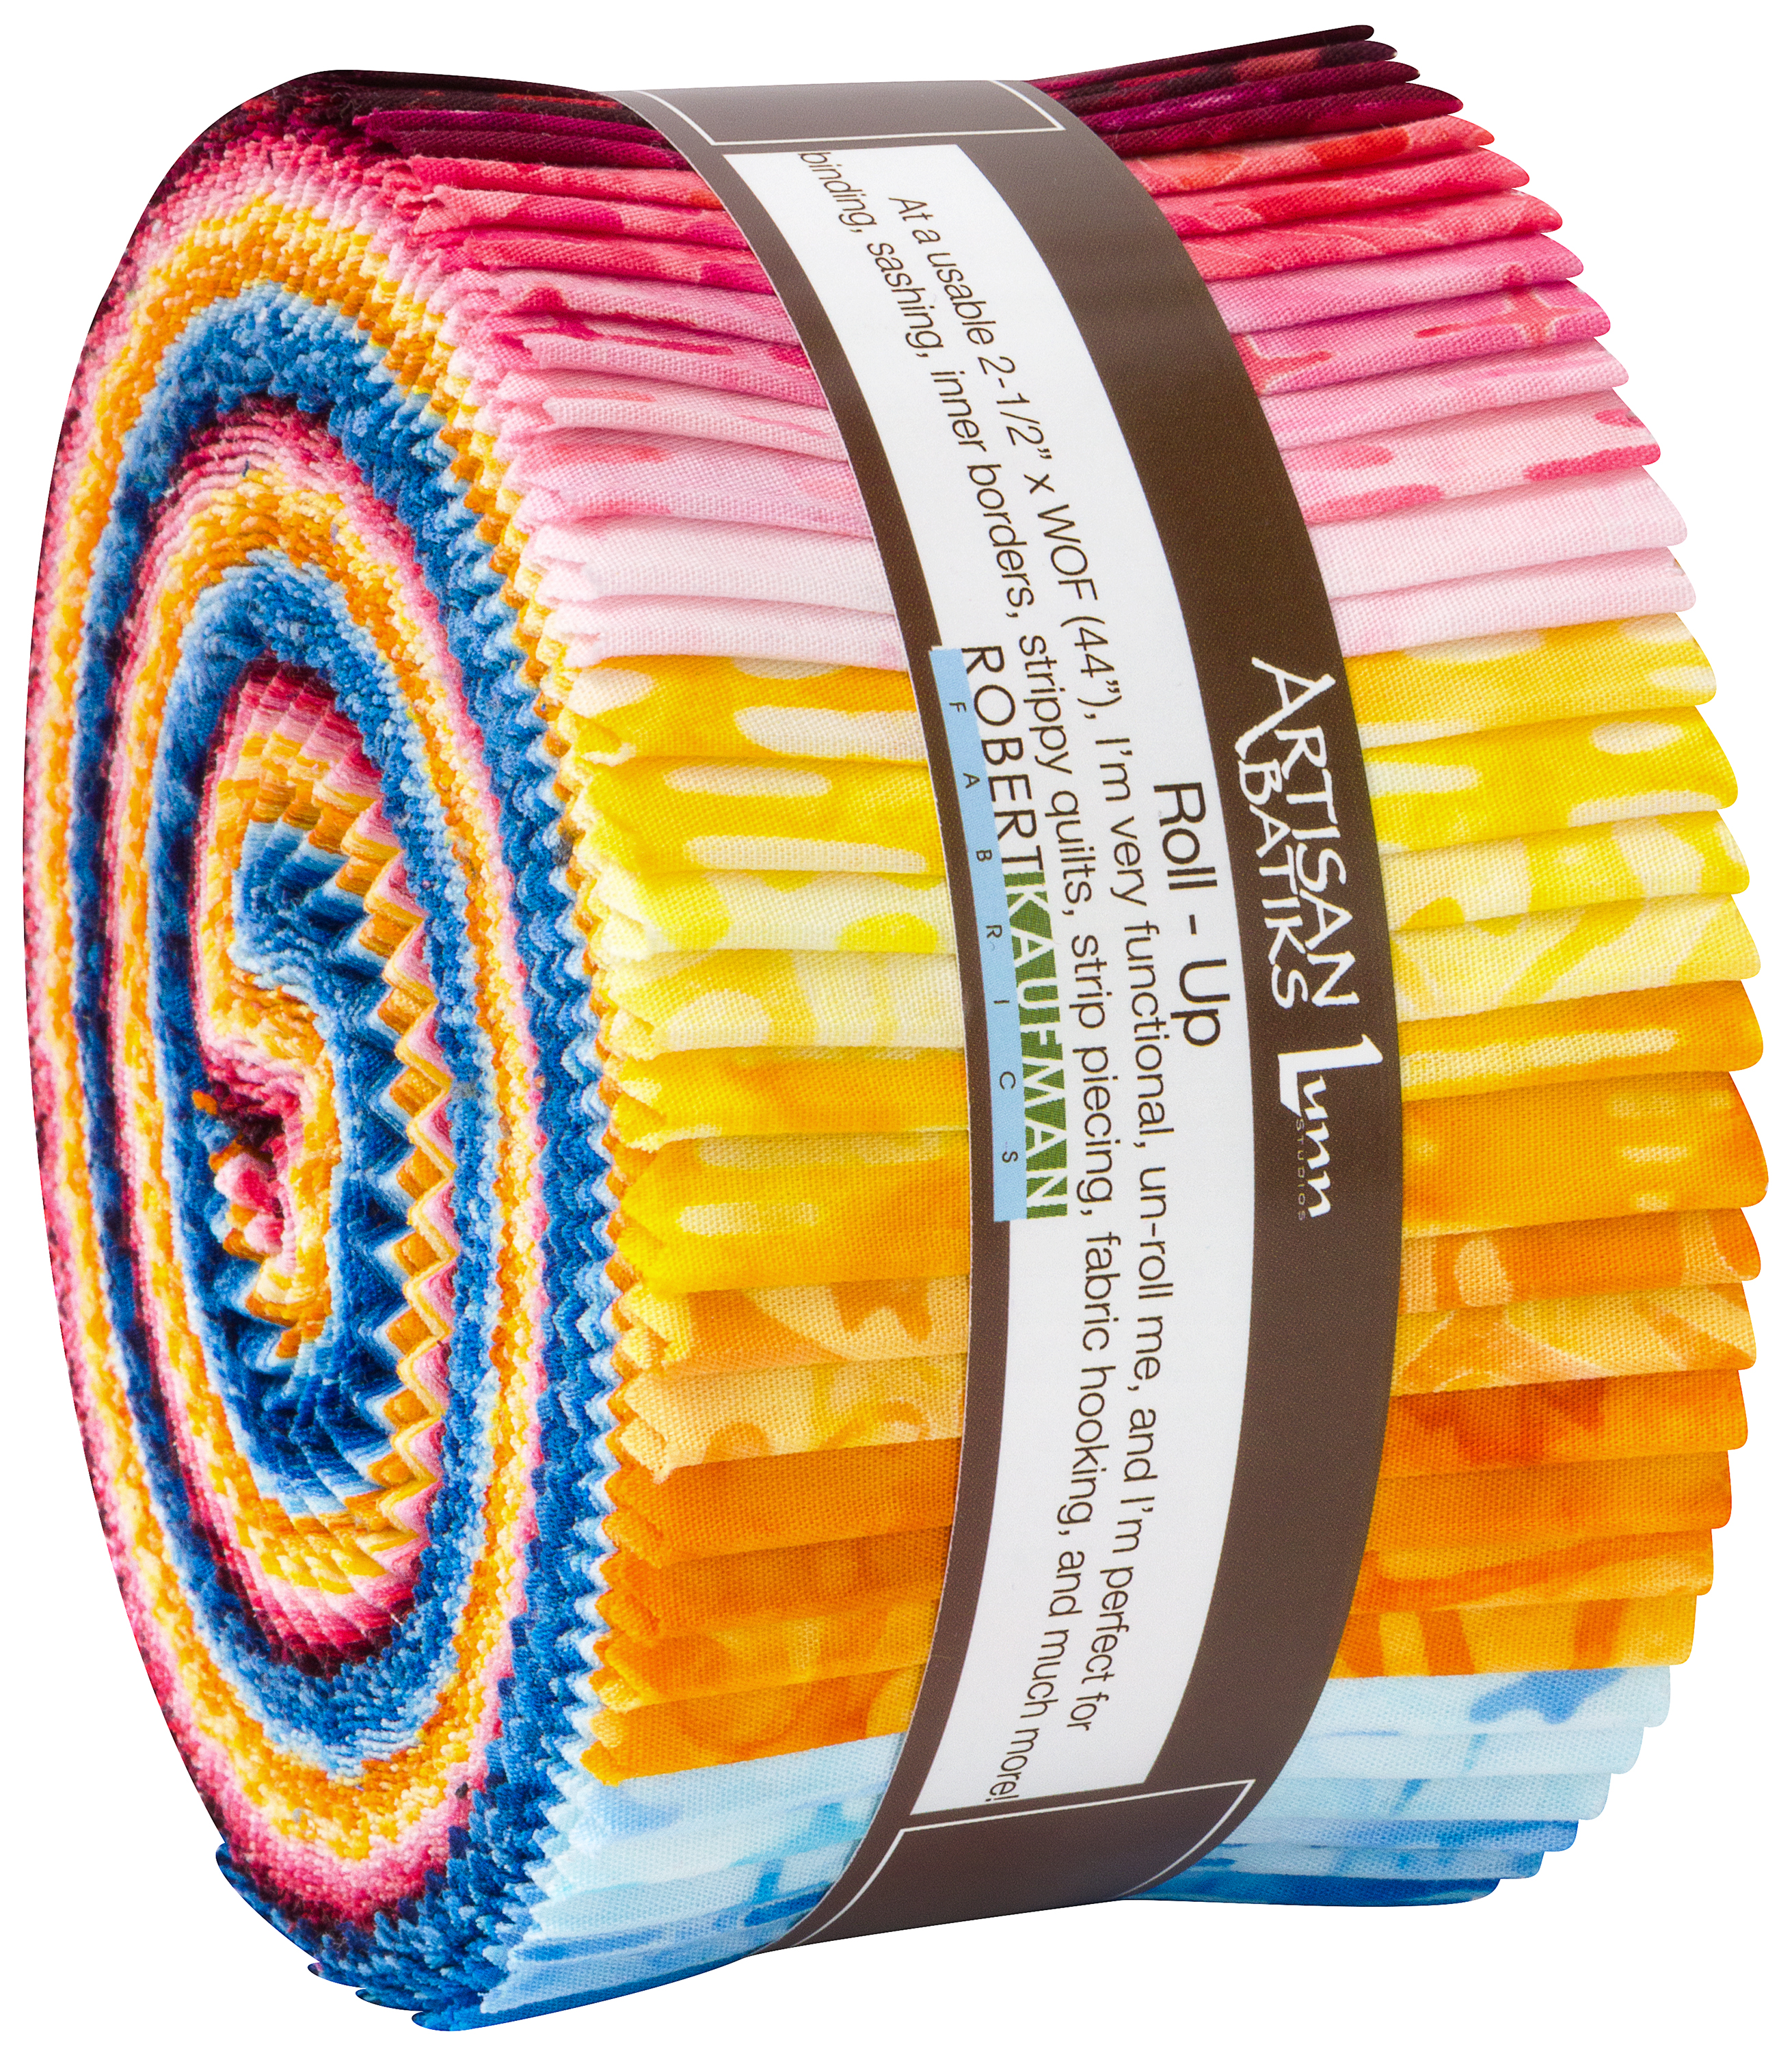 MULTI COLOR COORDINATING DAISIES  2.5 Inch  JELLY ROLL STRIPS